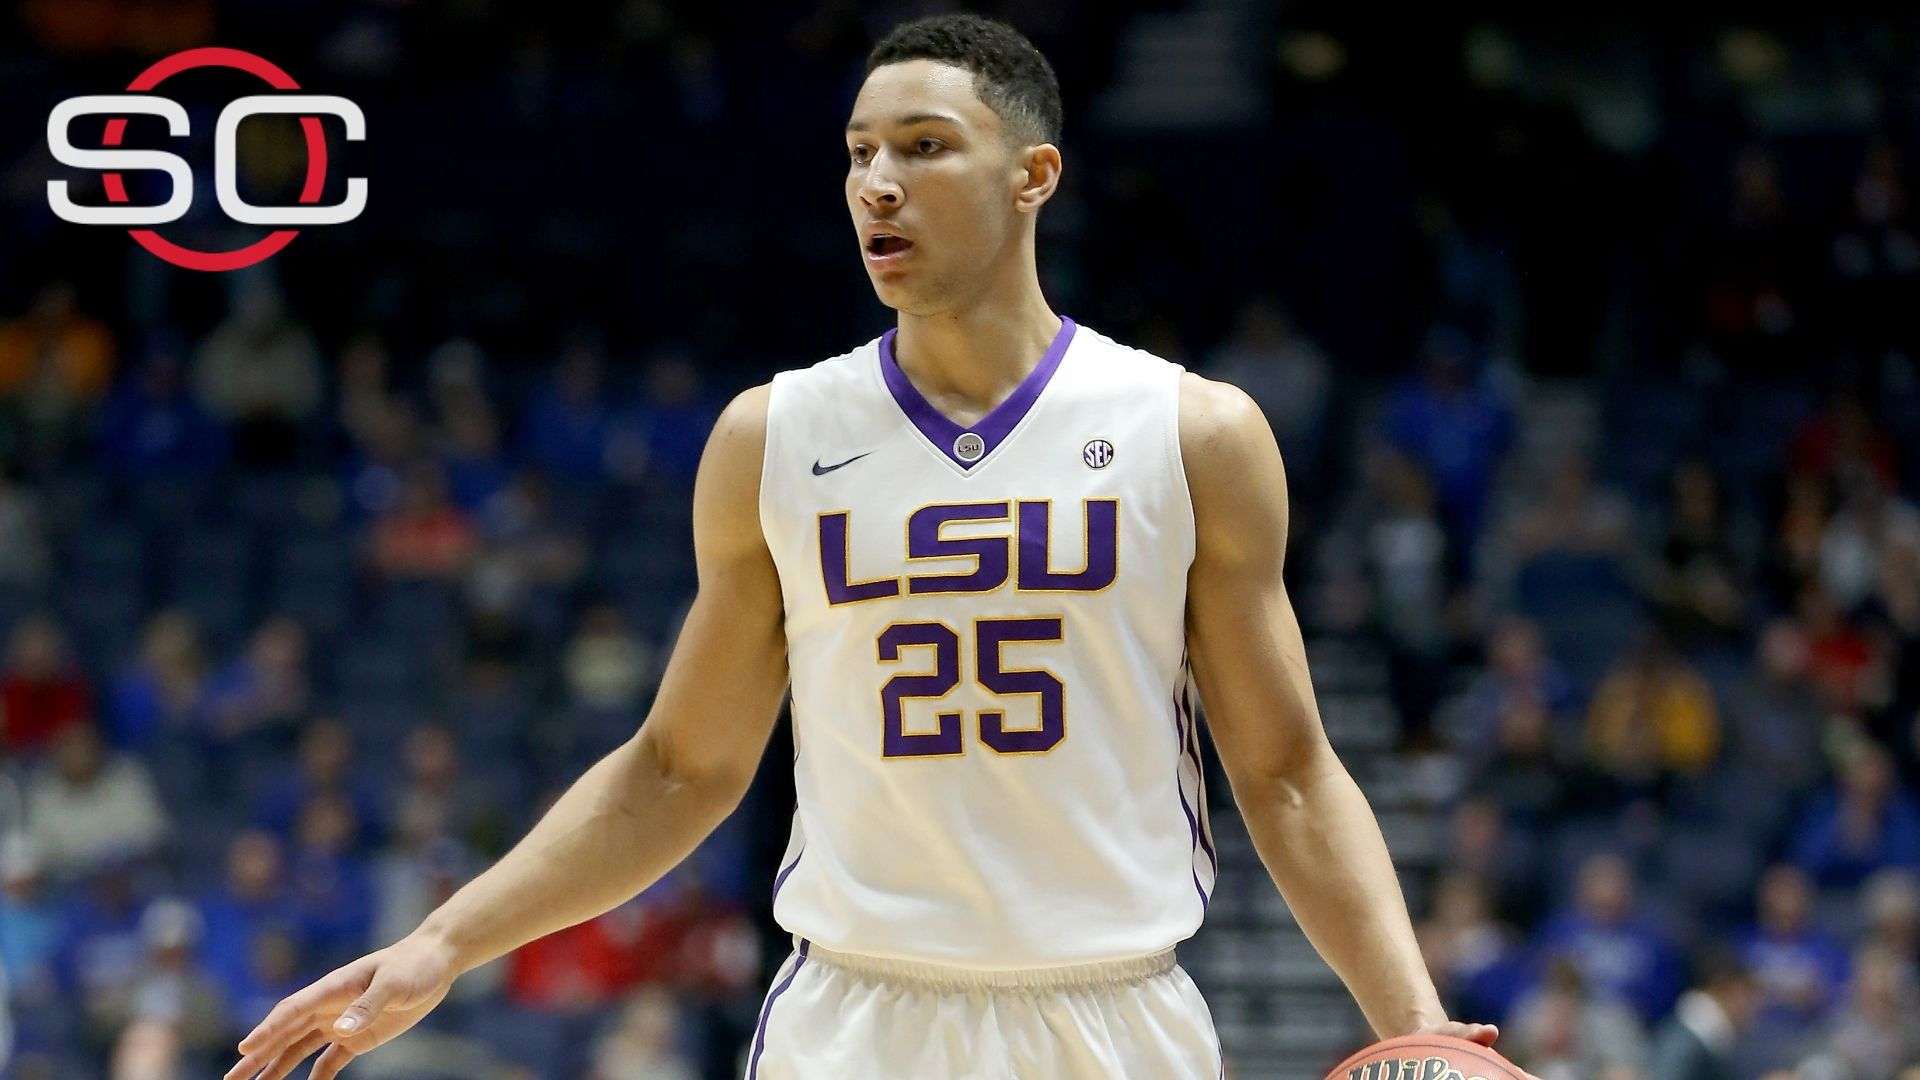 Goodman: Simmons to the NBA 'not earth shattering'